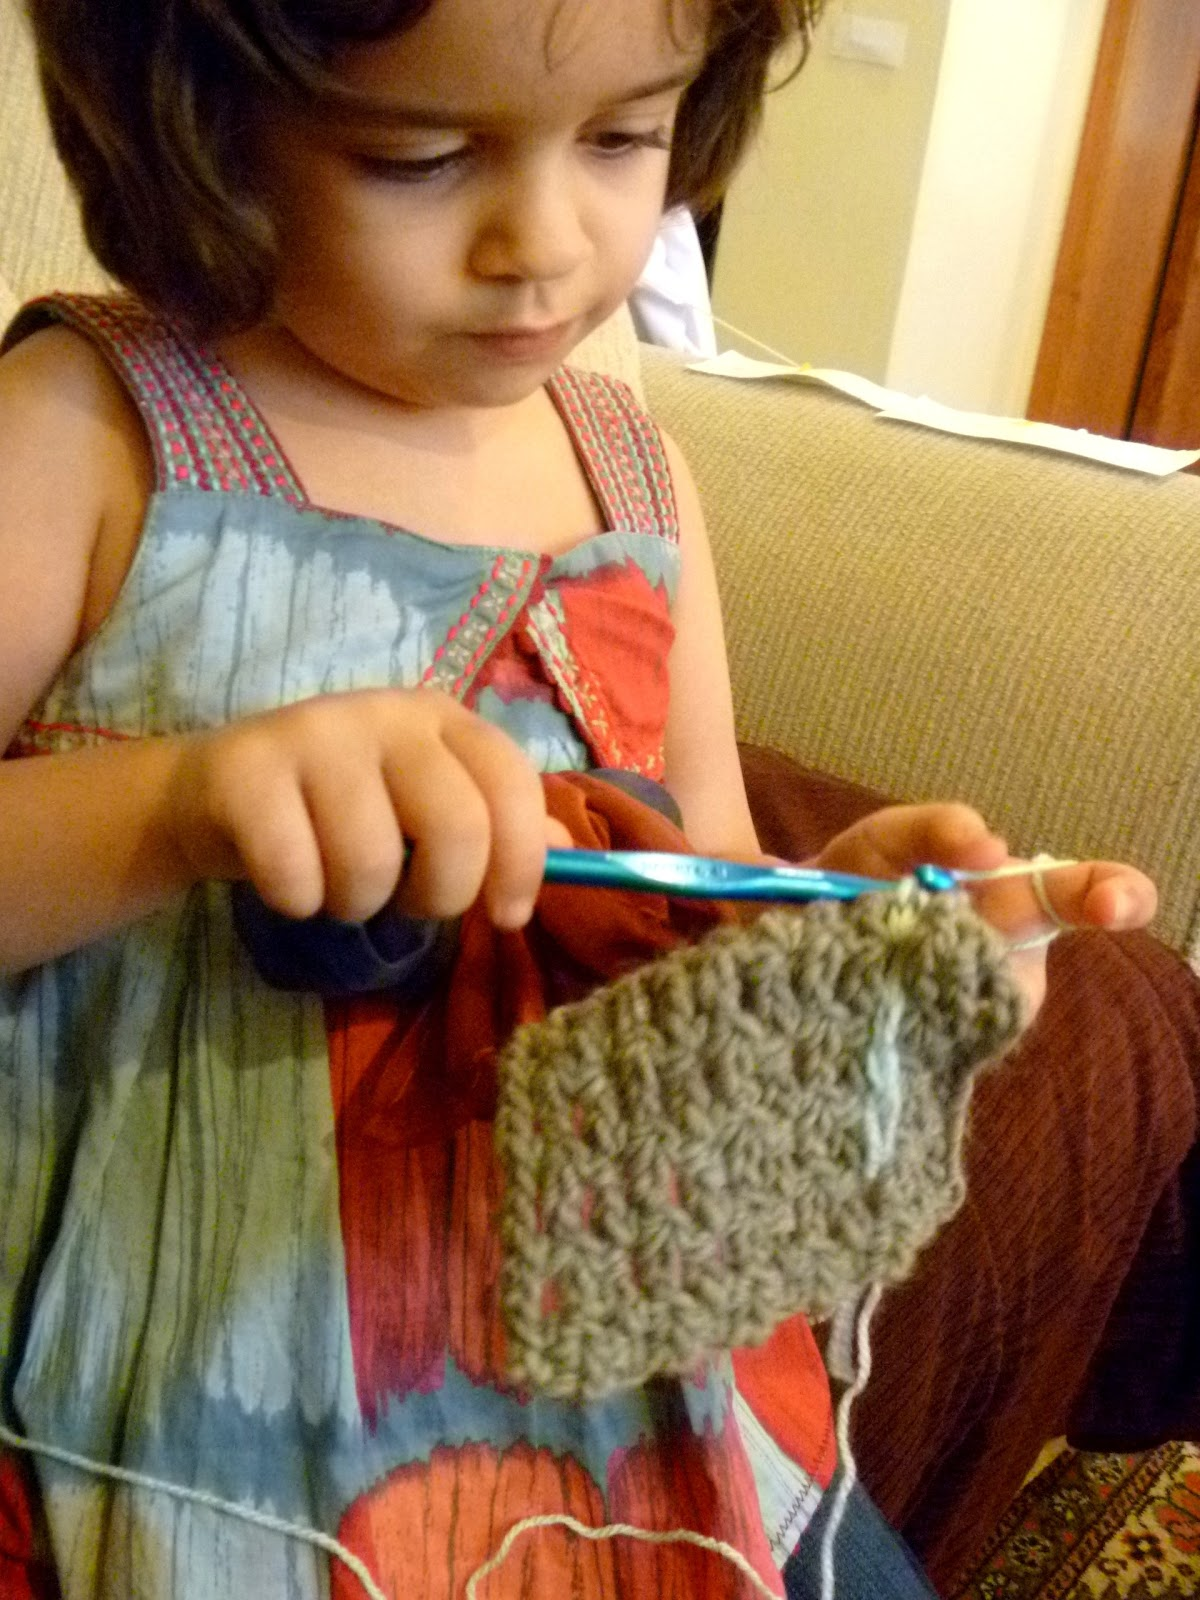 Stitch story a new approach to teaching a child to crochet a new approach to teaching a child to crochet ccuart Choice Image